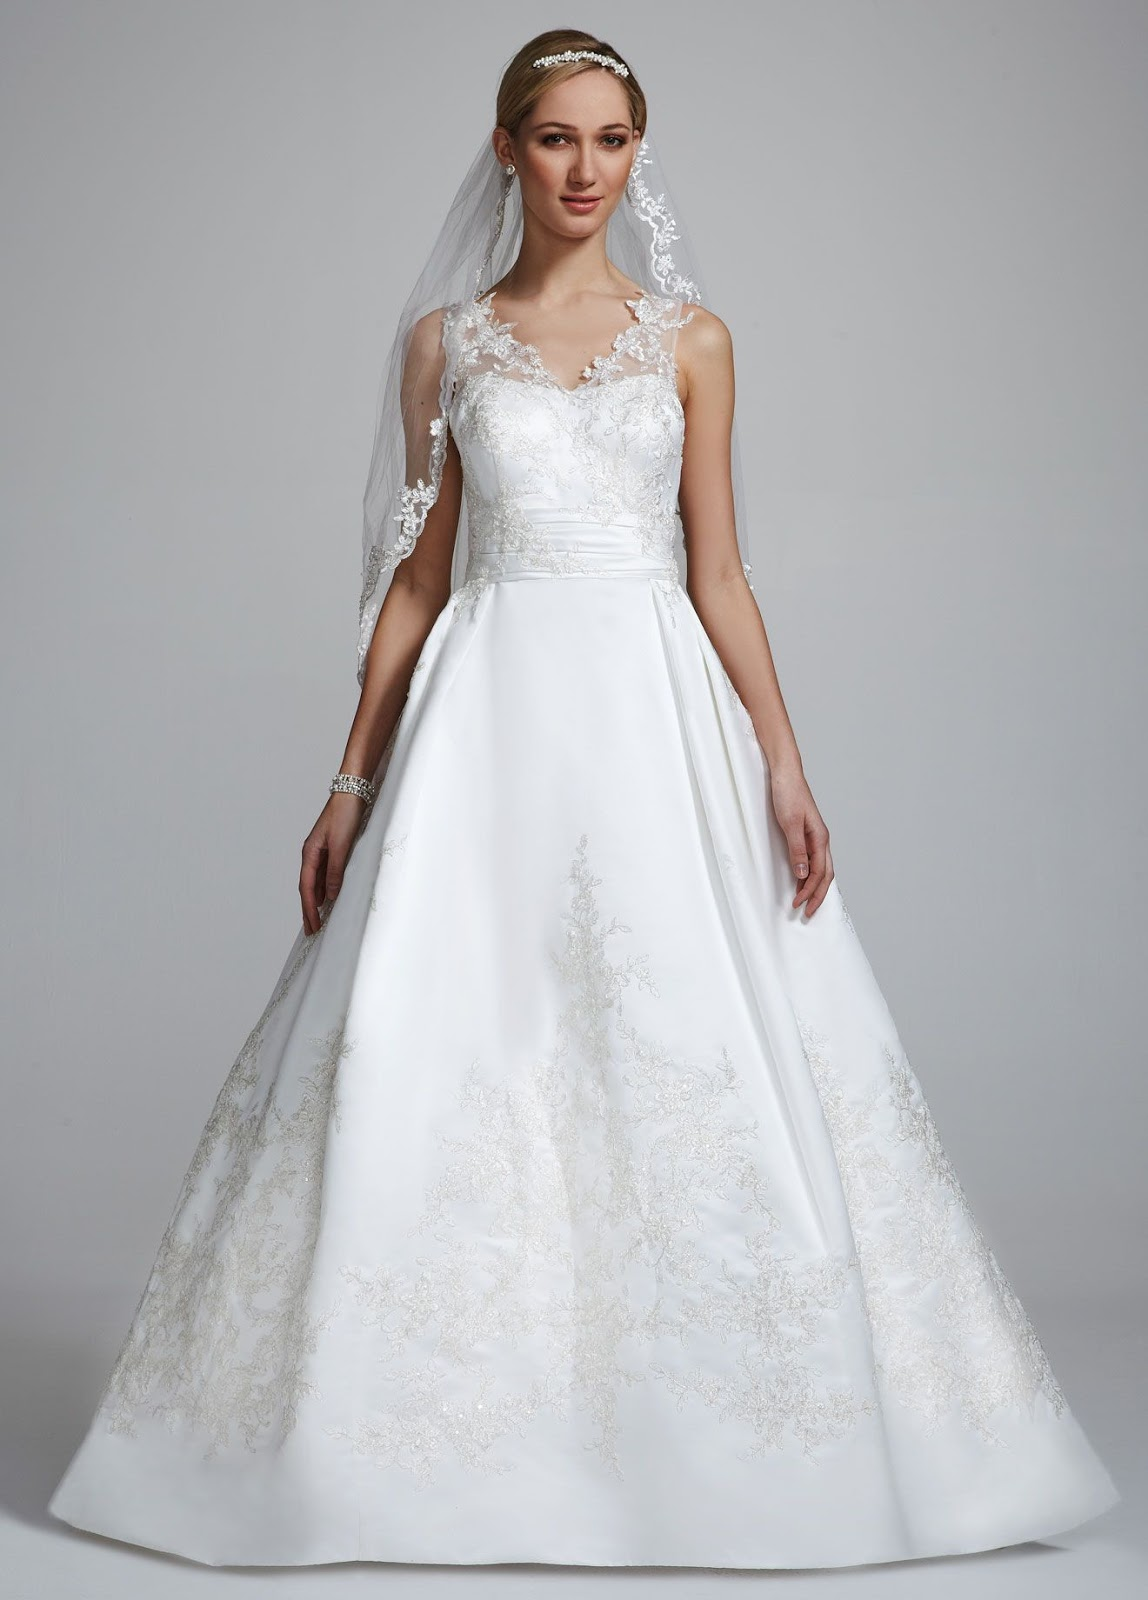 Lace Wedding Dresses Under 500 Dollars : Friday five for wedding dresses under dollars volume